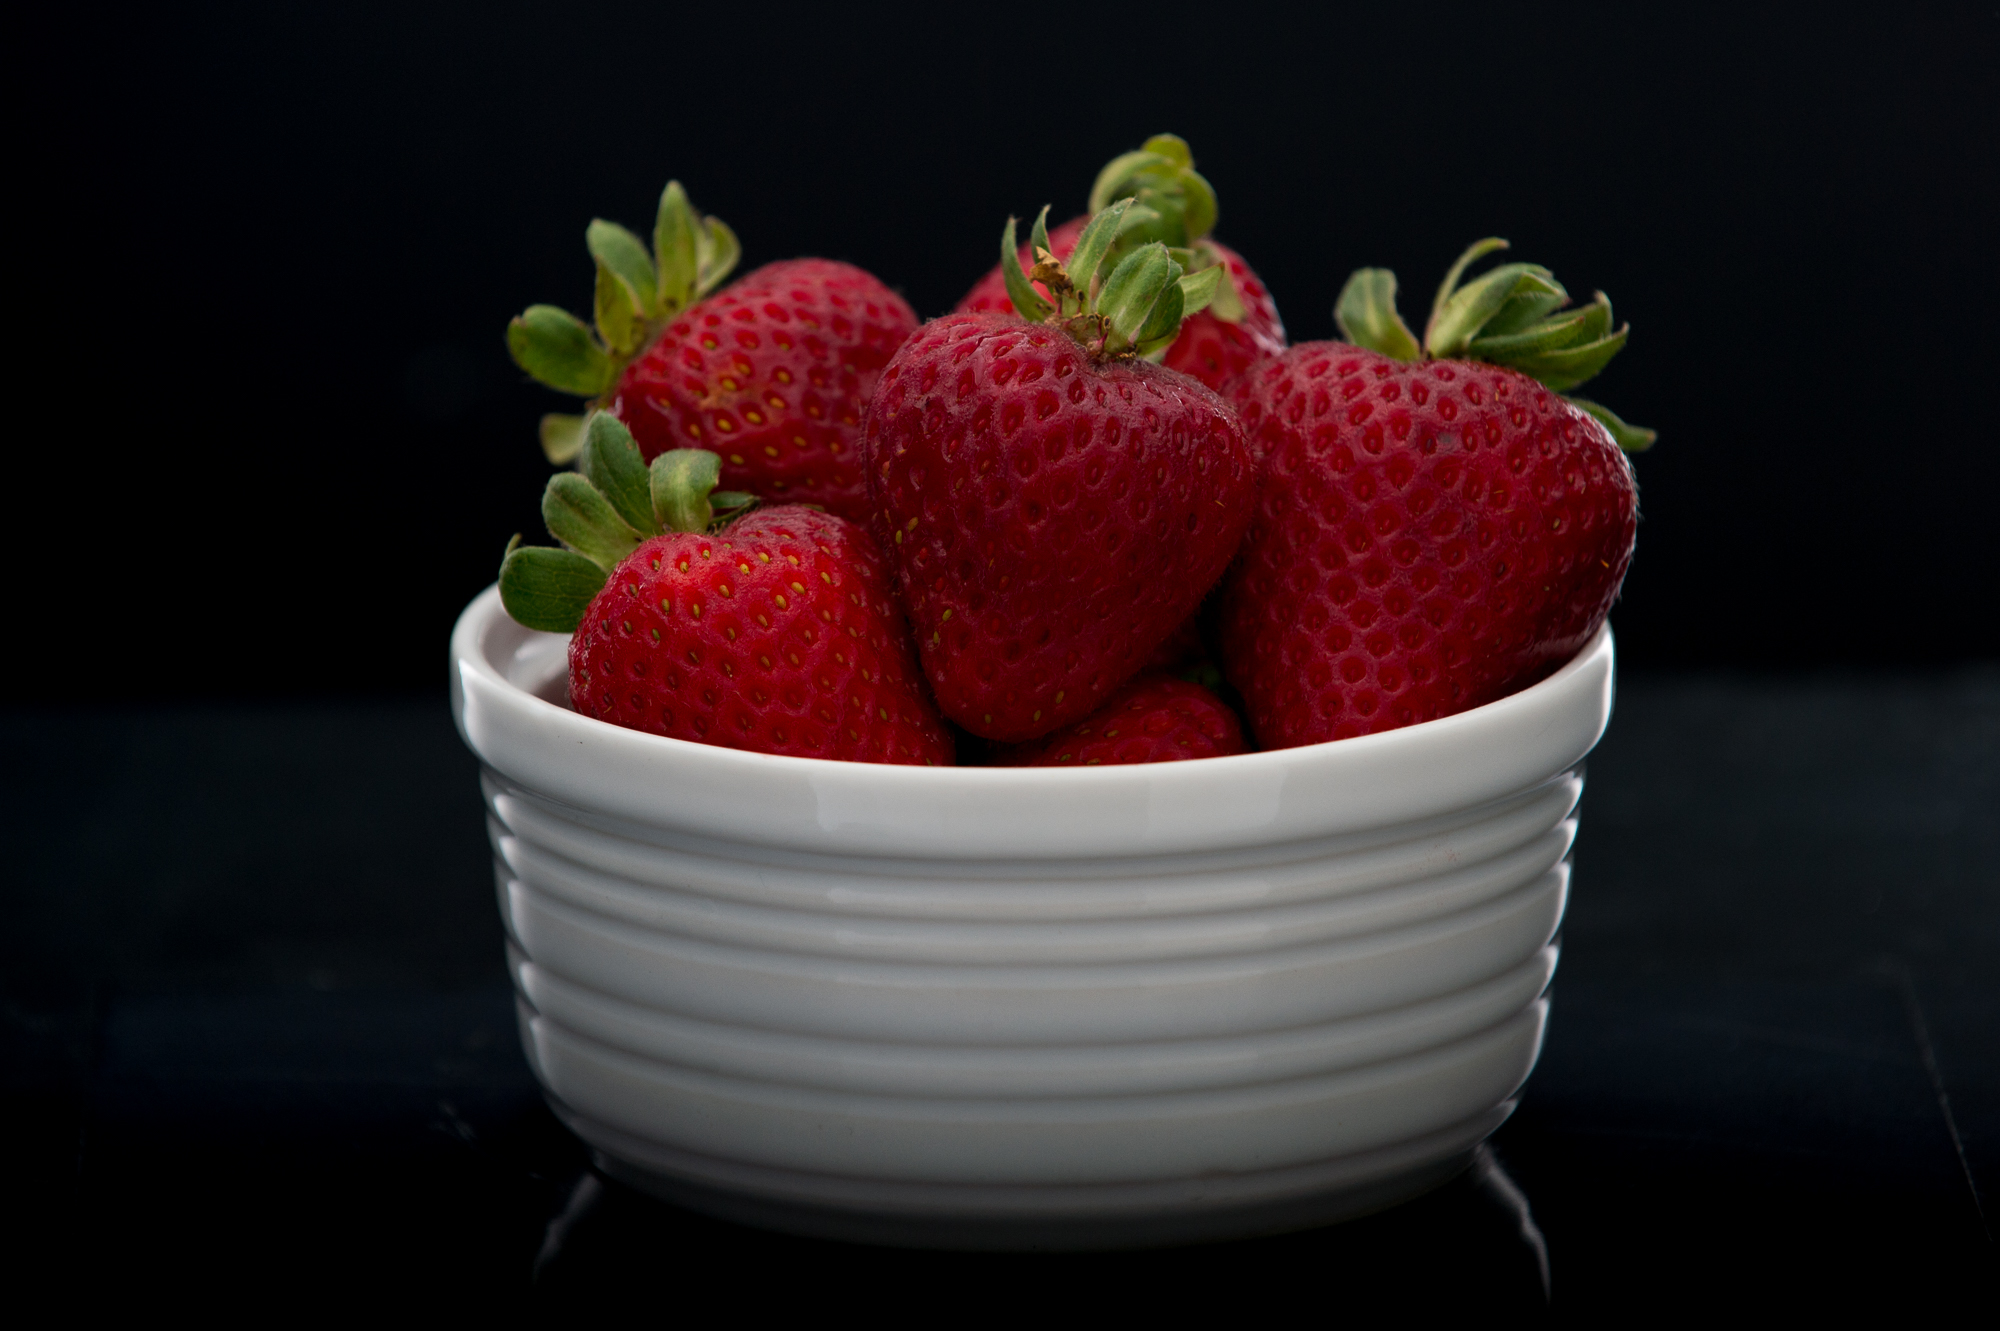 bowl-of-strawberries.jpg